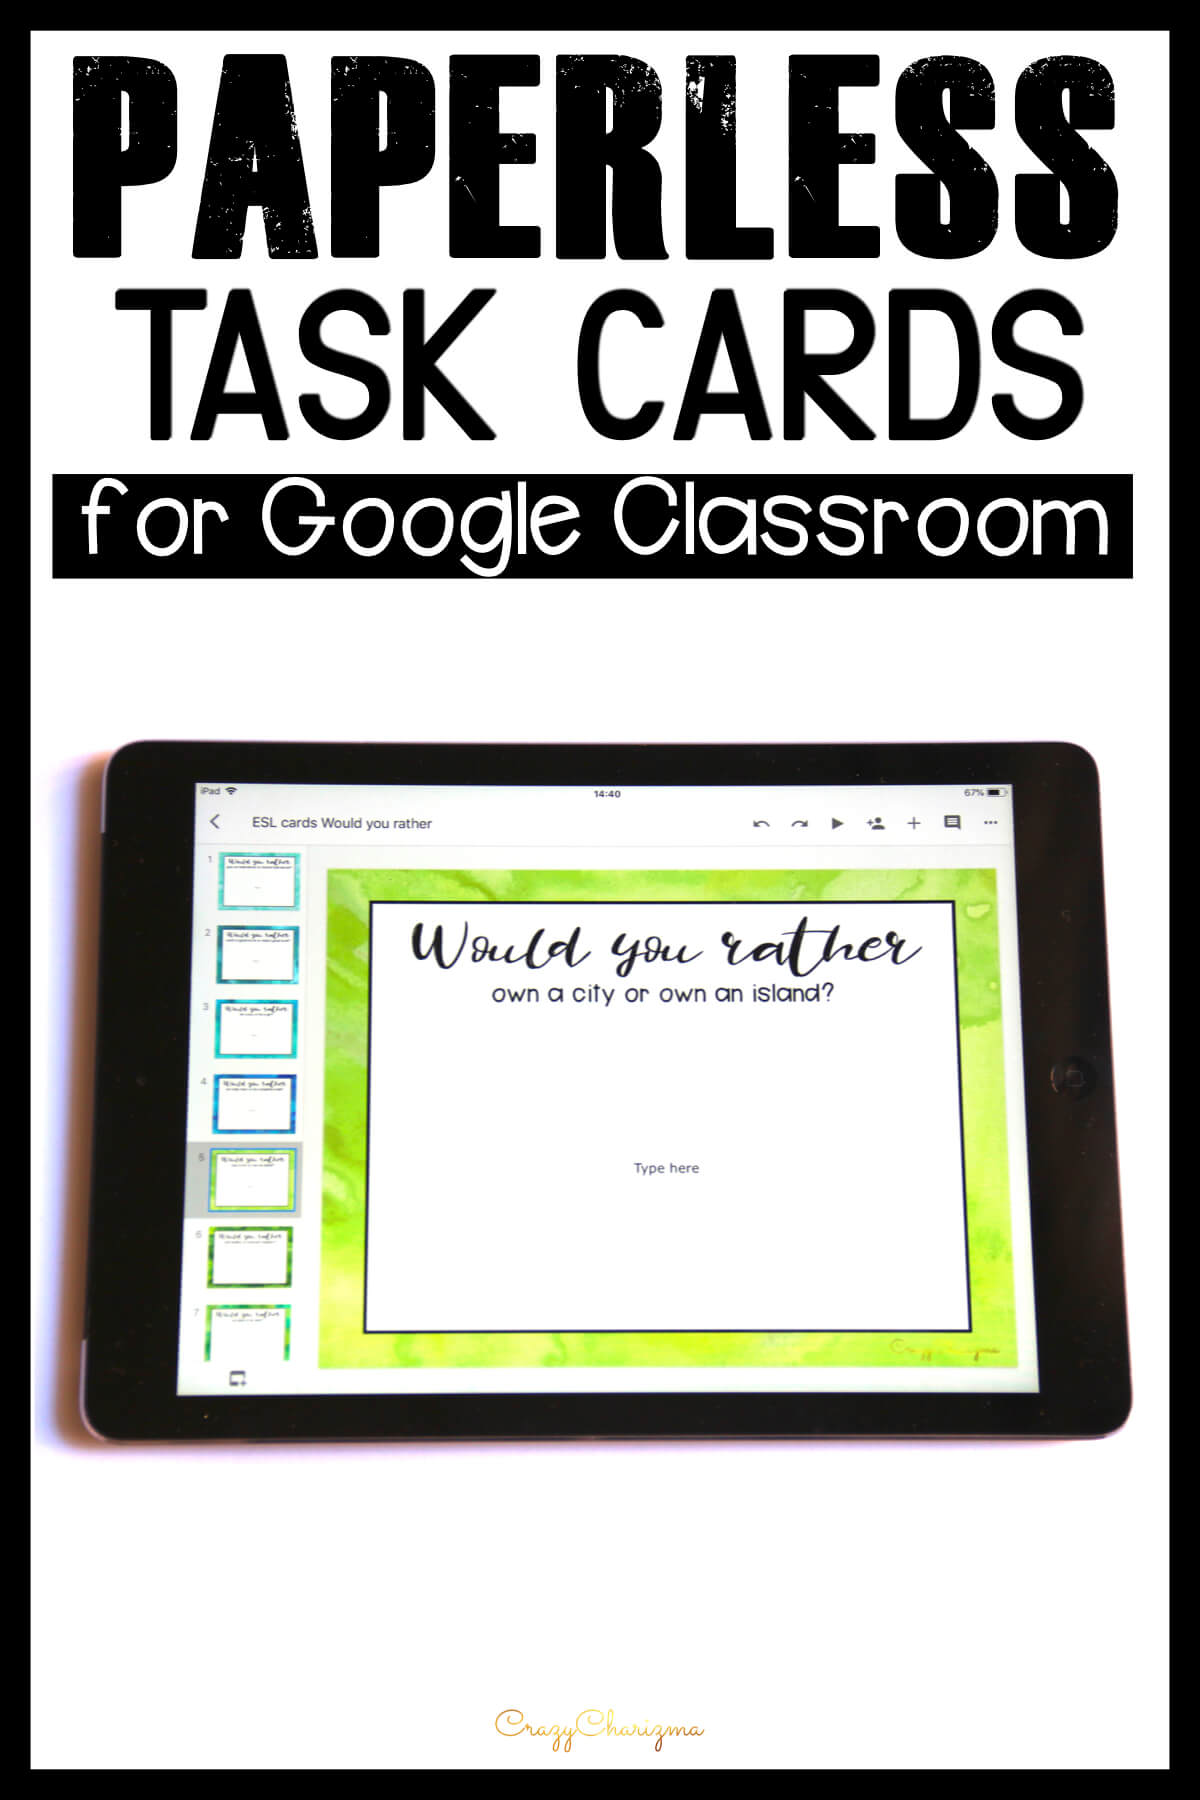 Need lots of questions to practice writing and creative thinking? Use these paperless activities - Questions Task Cards with your students (perfect for Google Classroom™). The packet contains 90 slides with Would you rather questions. You can use the task cards all year around and provide students with endless writing tasks and ideas.